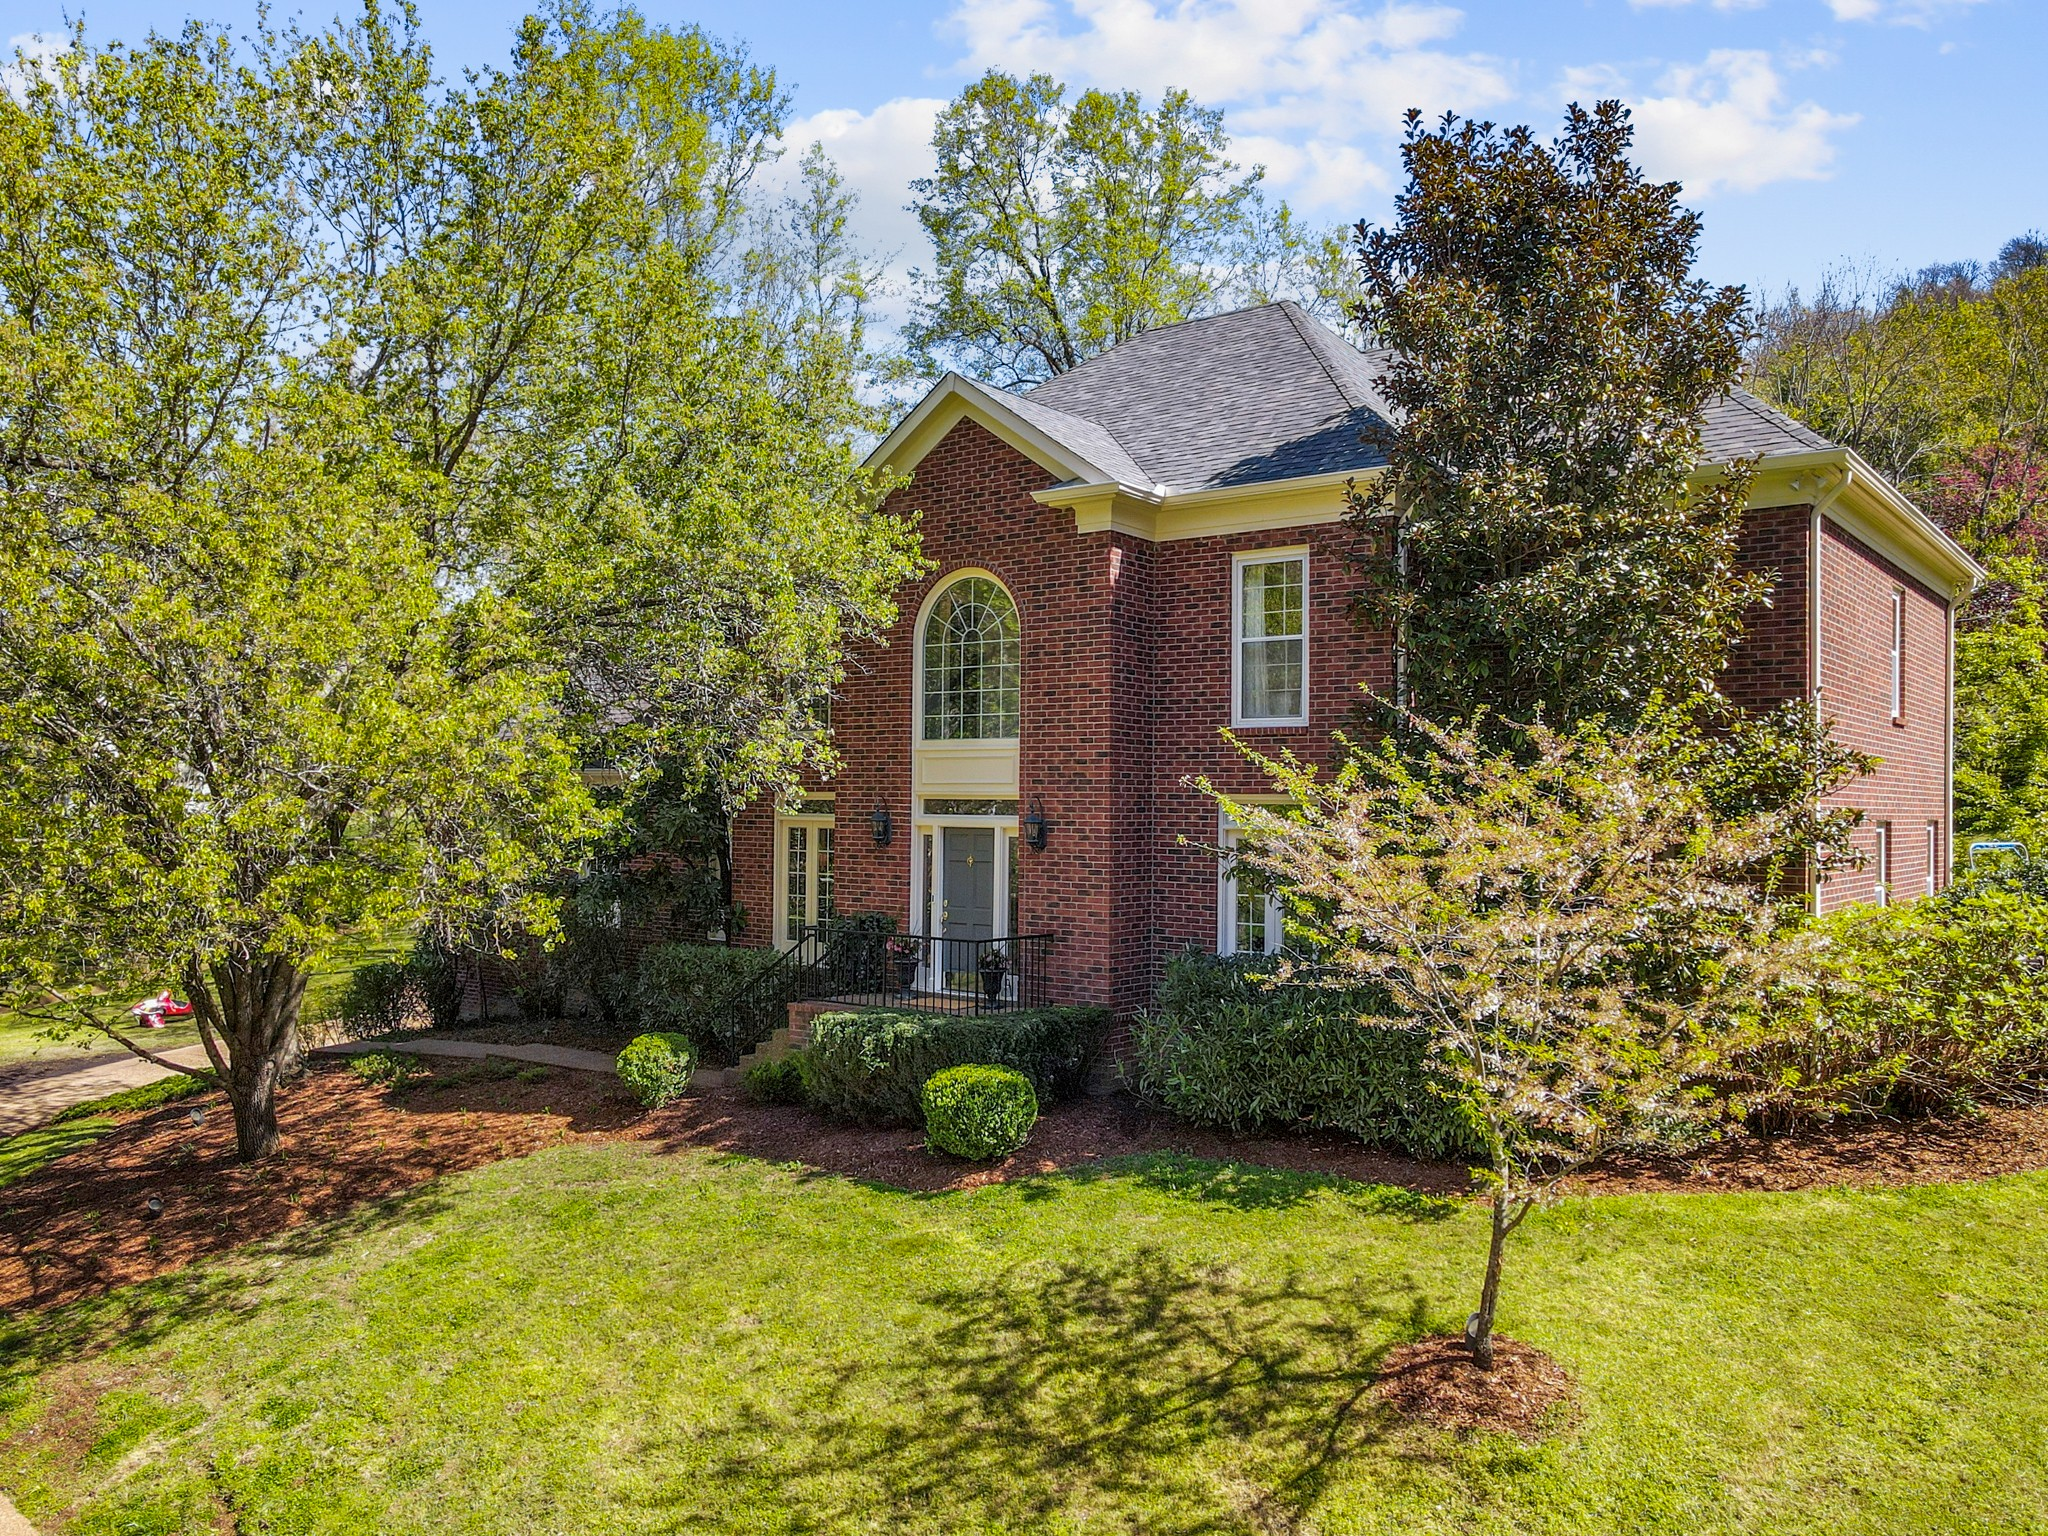 1172 Travelers Ridge Dr Property Photo - Nashville, TN real estate listing